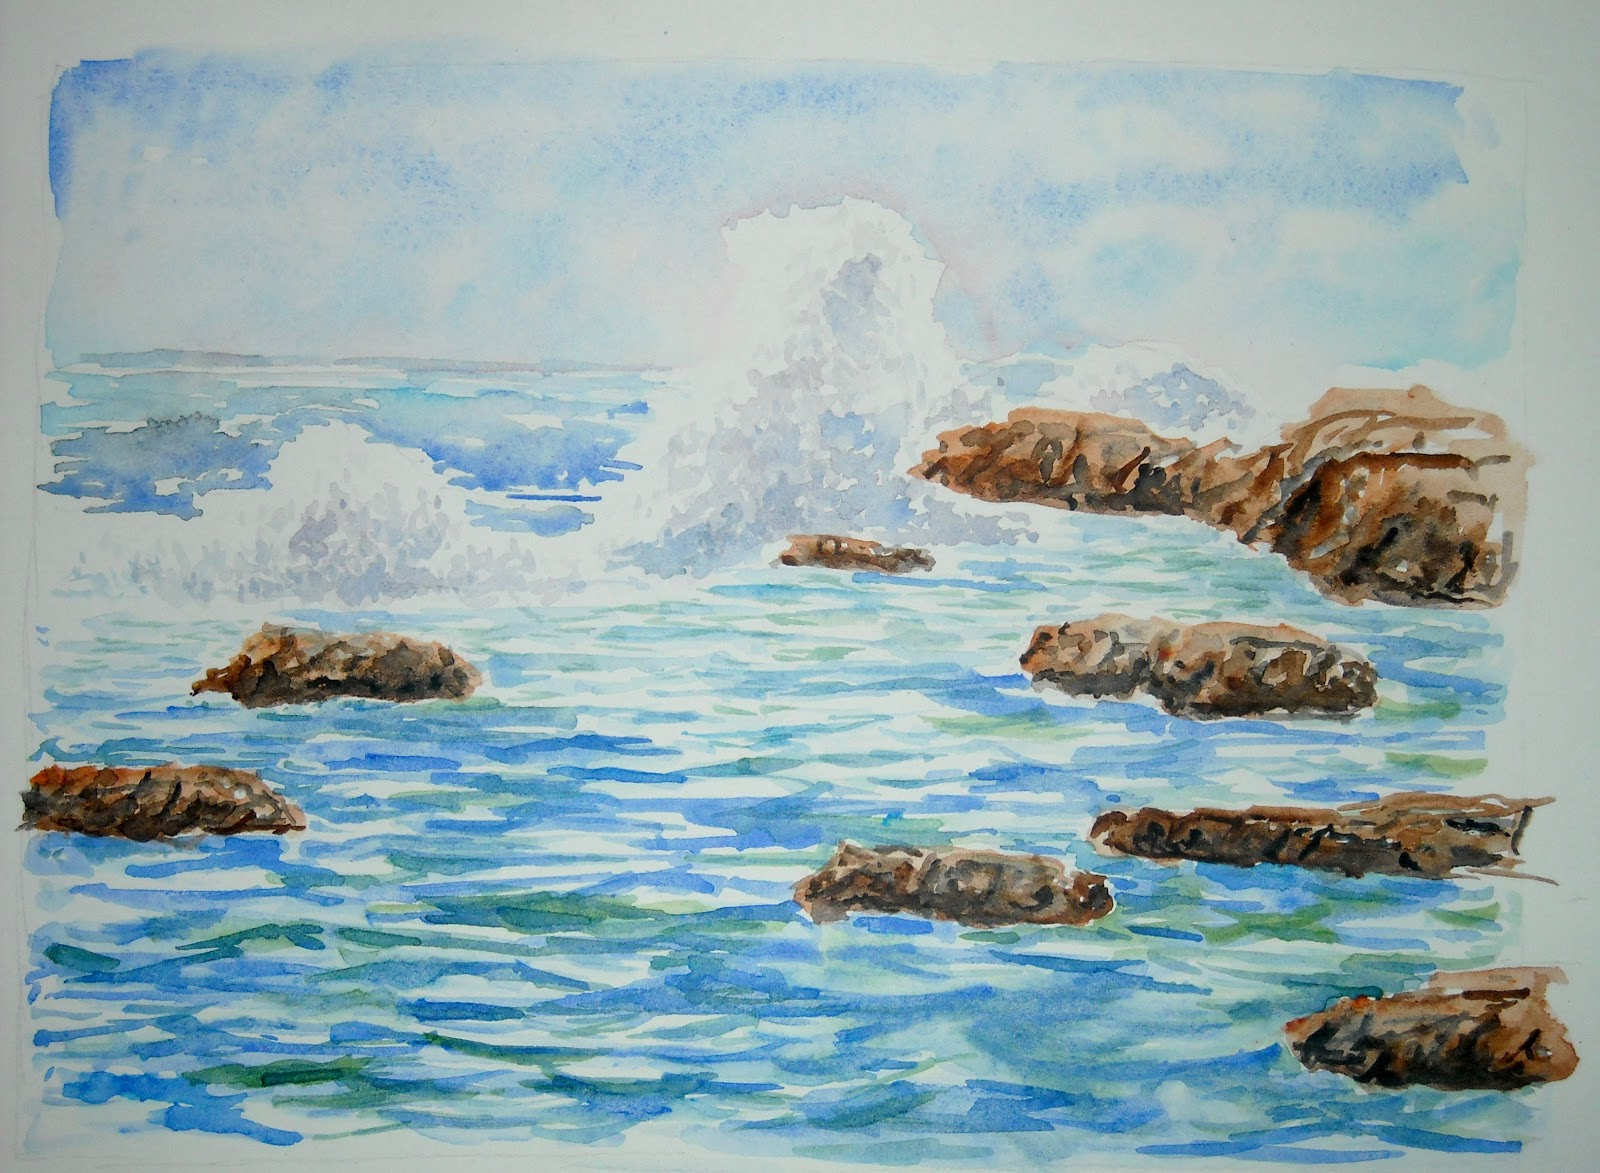 Artist Adron Watercolor Painting Of Sea Wave Crashing